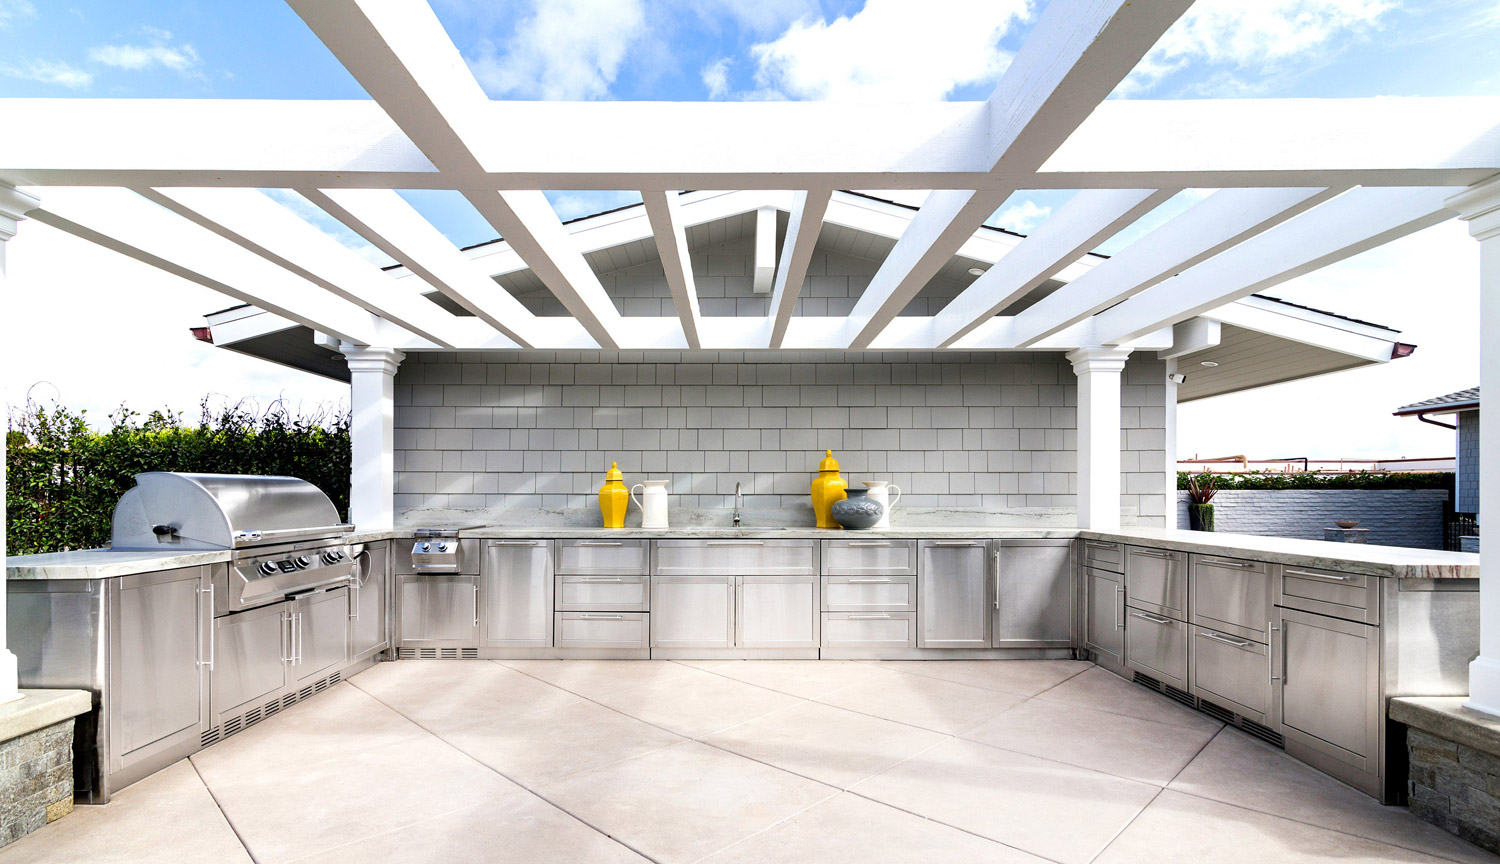 outdoor kitchen design center outdoor kitchen design center michael kitchens 3843